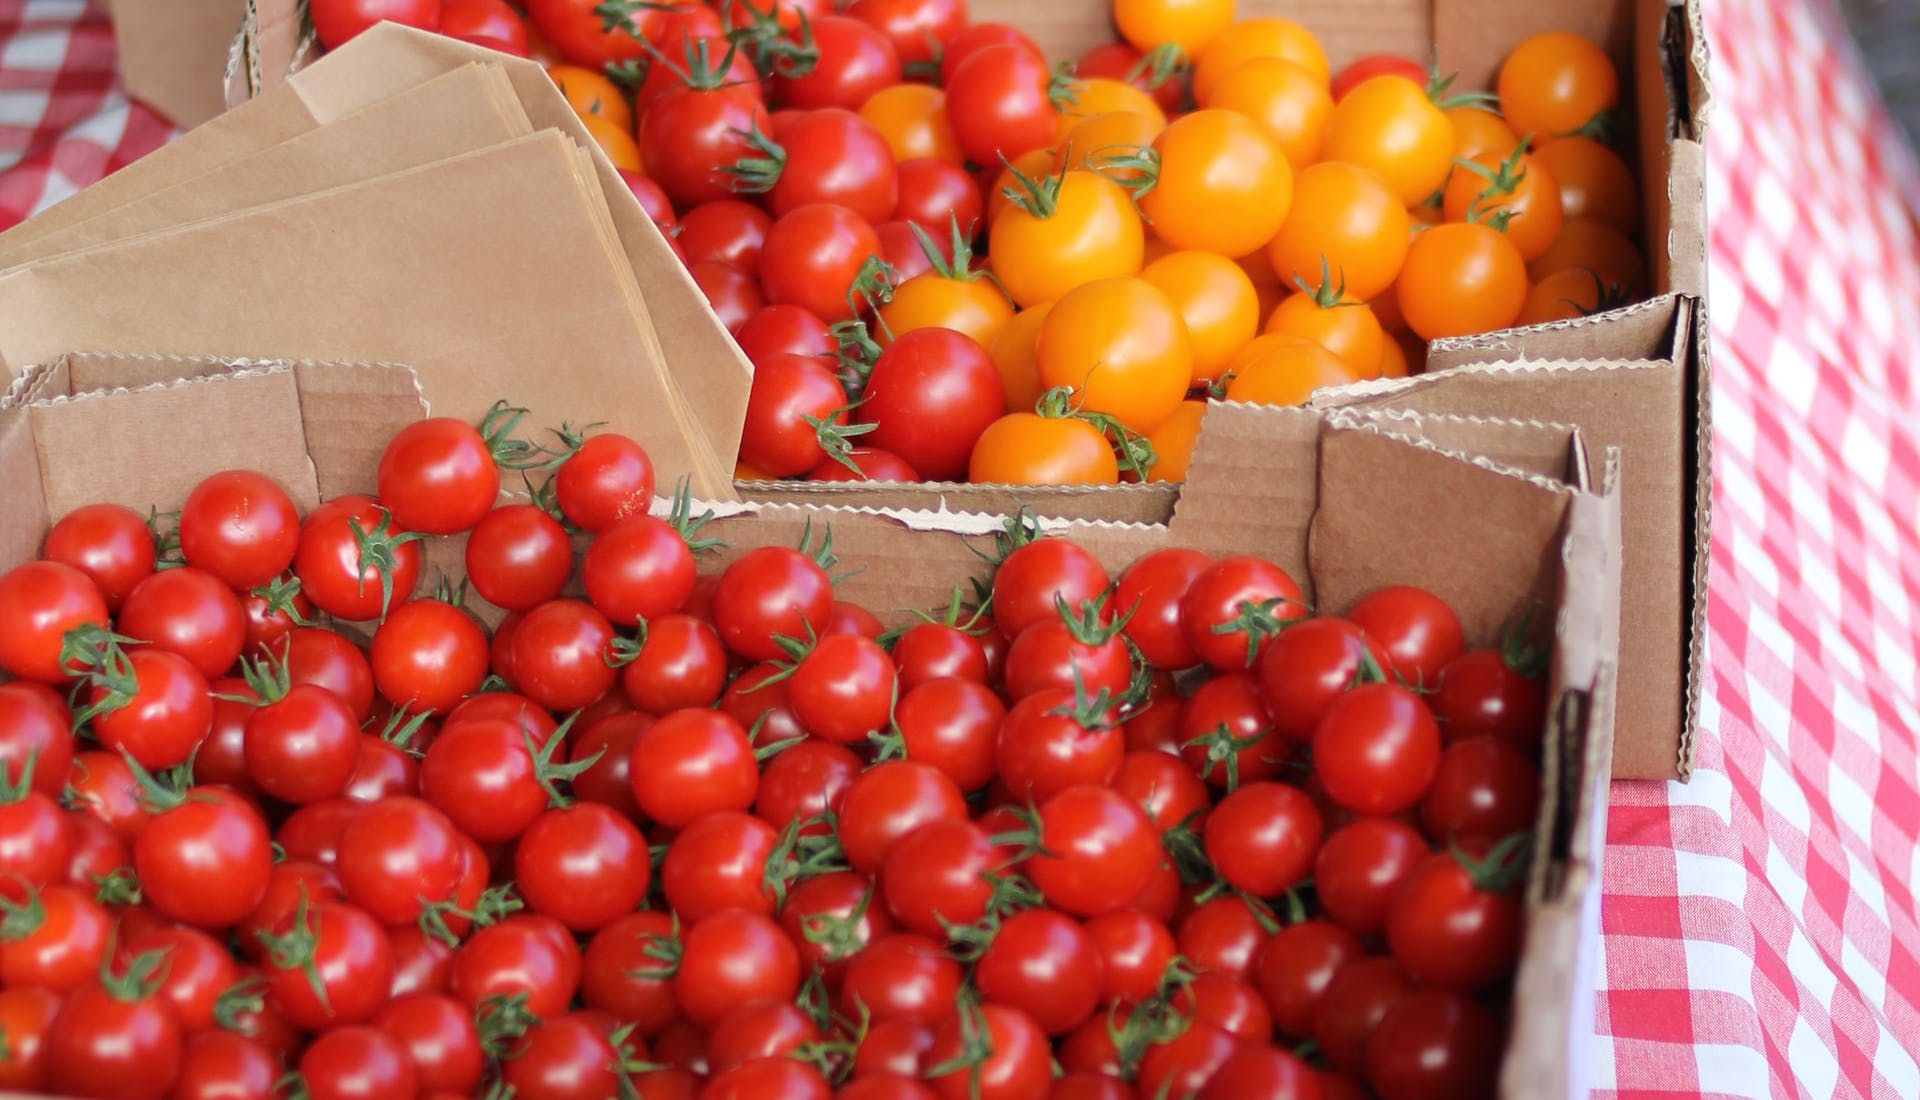 fresh tomatoes in crates